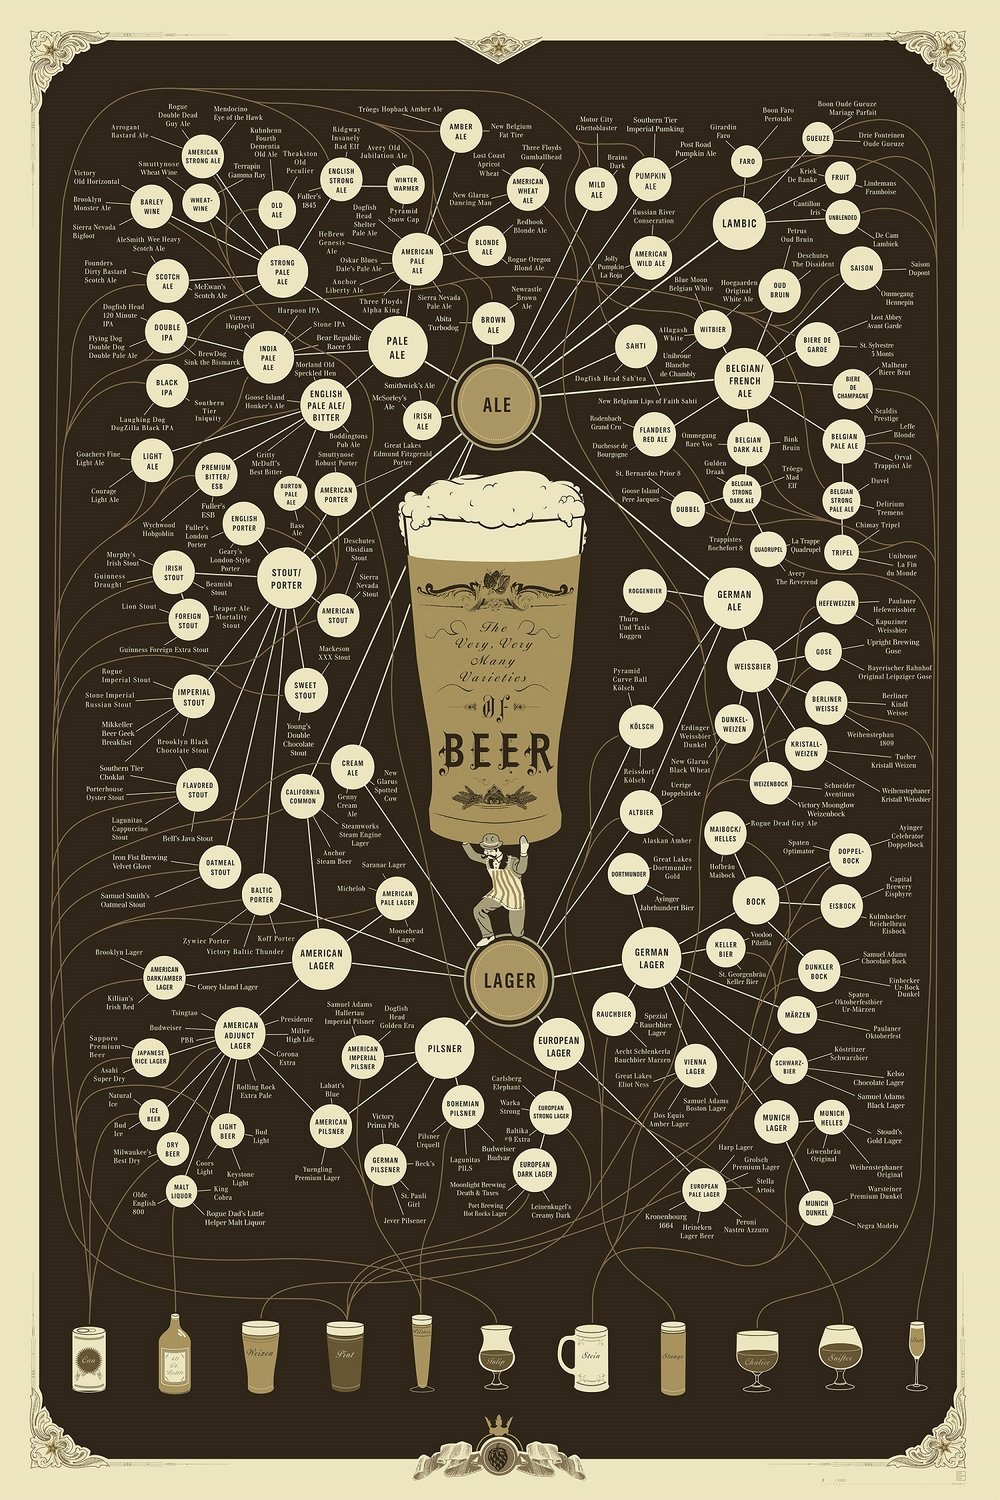 Beer Pop Chart designed by Ben Gibson and Patrick Mulligan